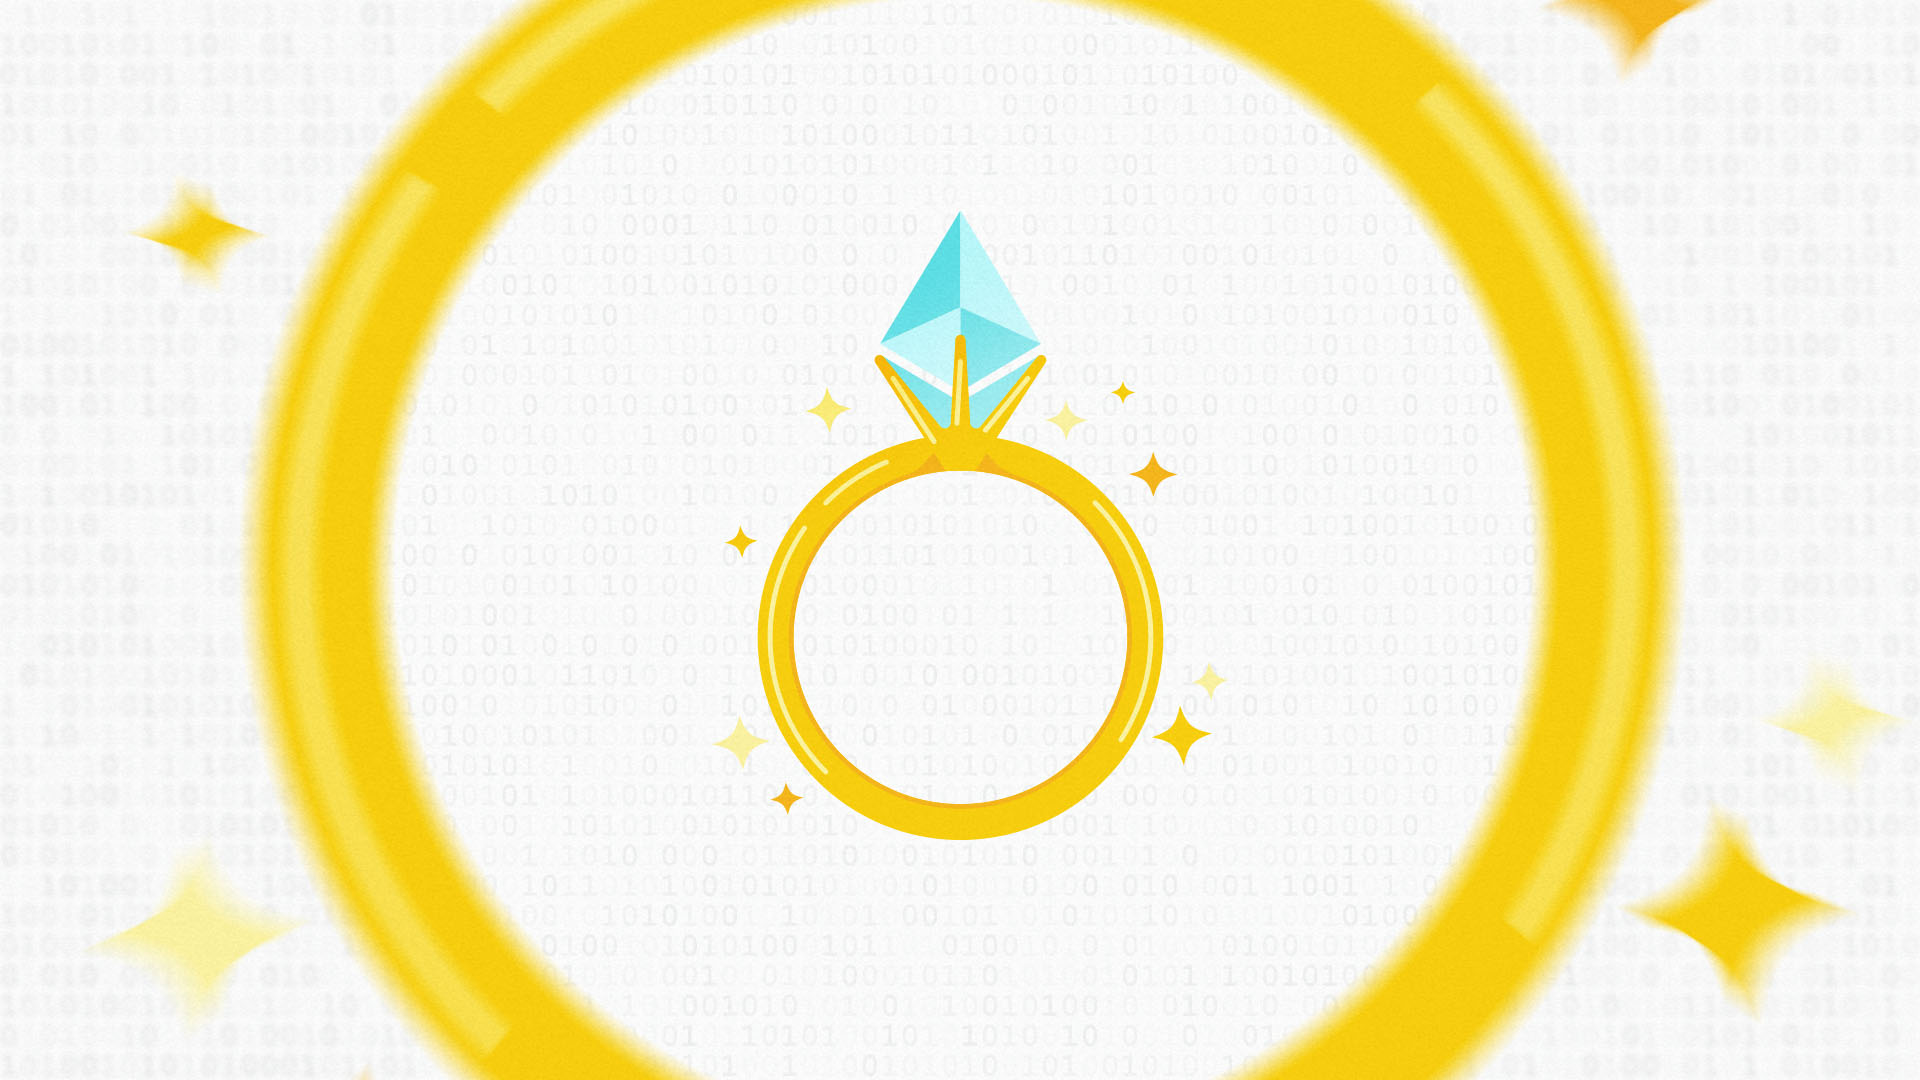 A gold wedding ring with the diamond made from the Ethereum logo